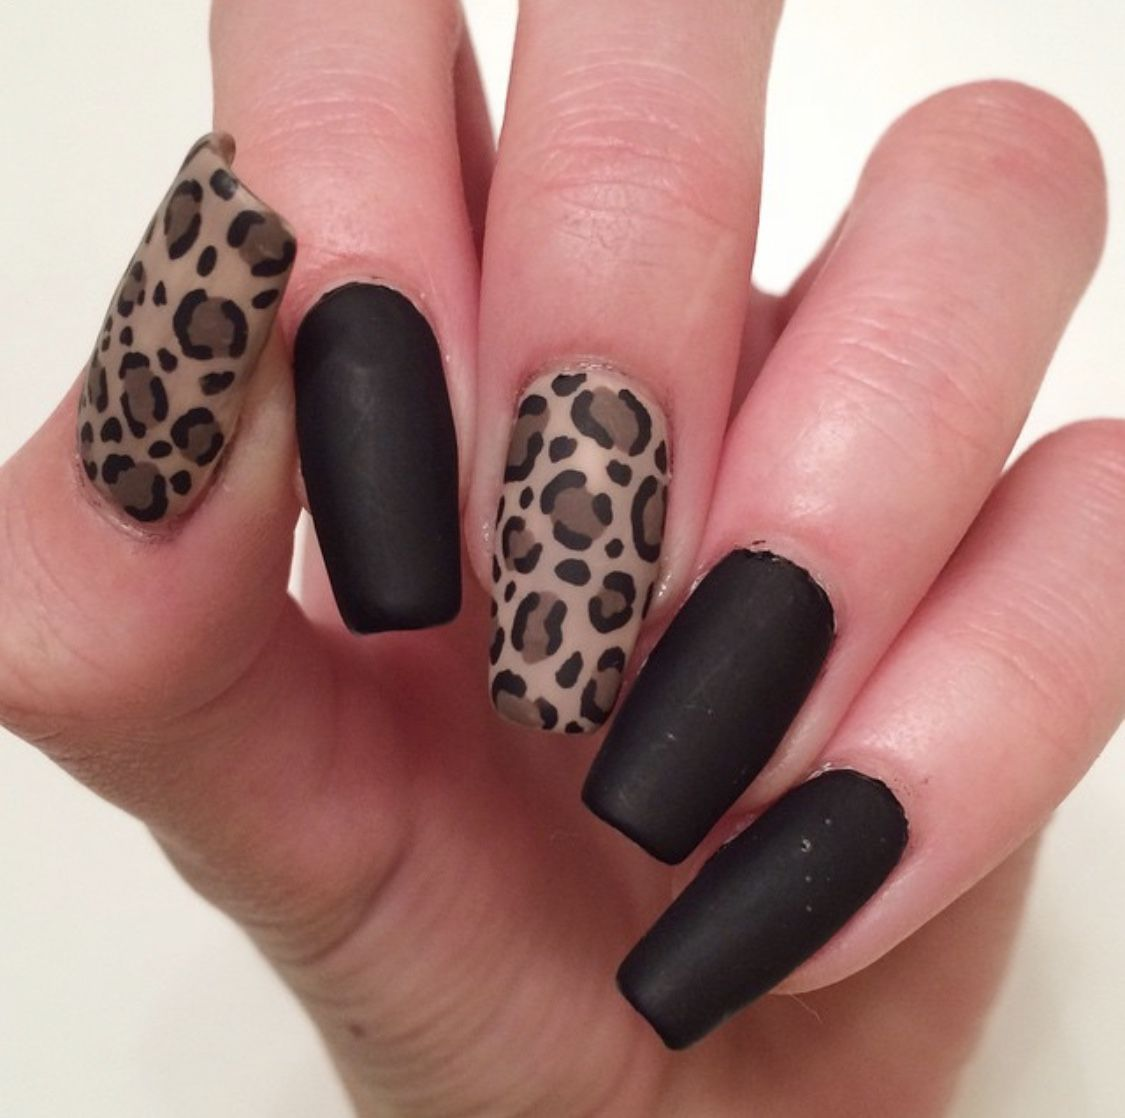 Black Matte Leopard Nails Acrylic Nails Stiletto Cheetah Print Nails Leopard Print Nails